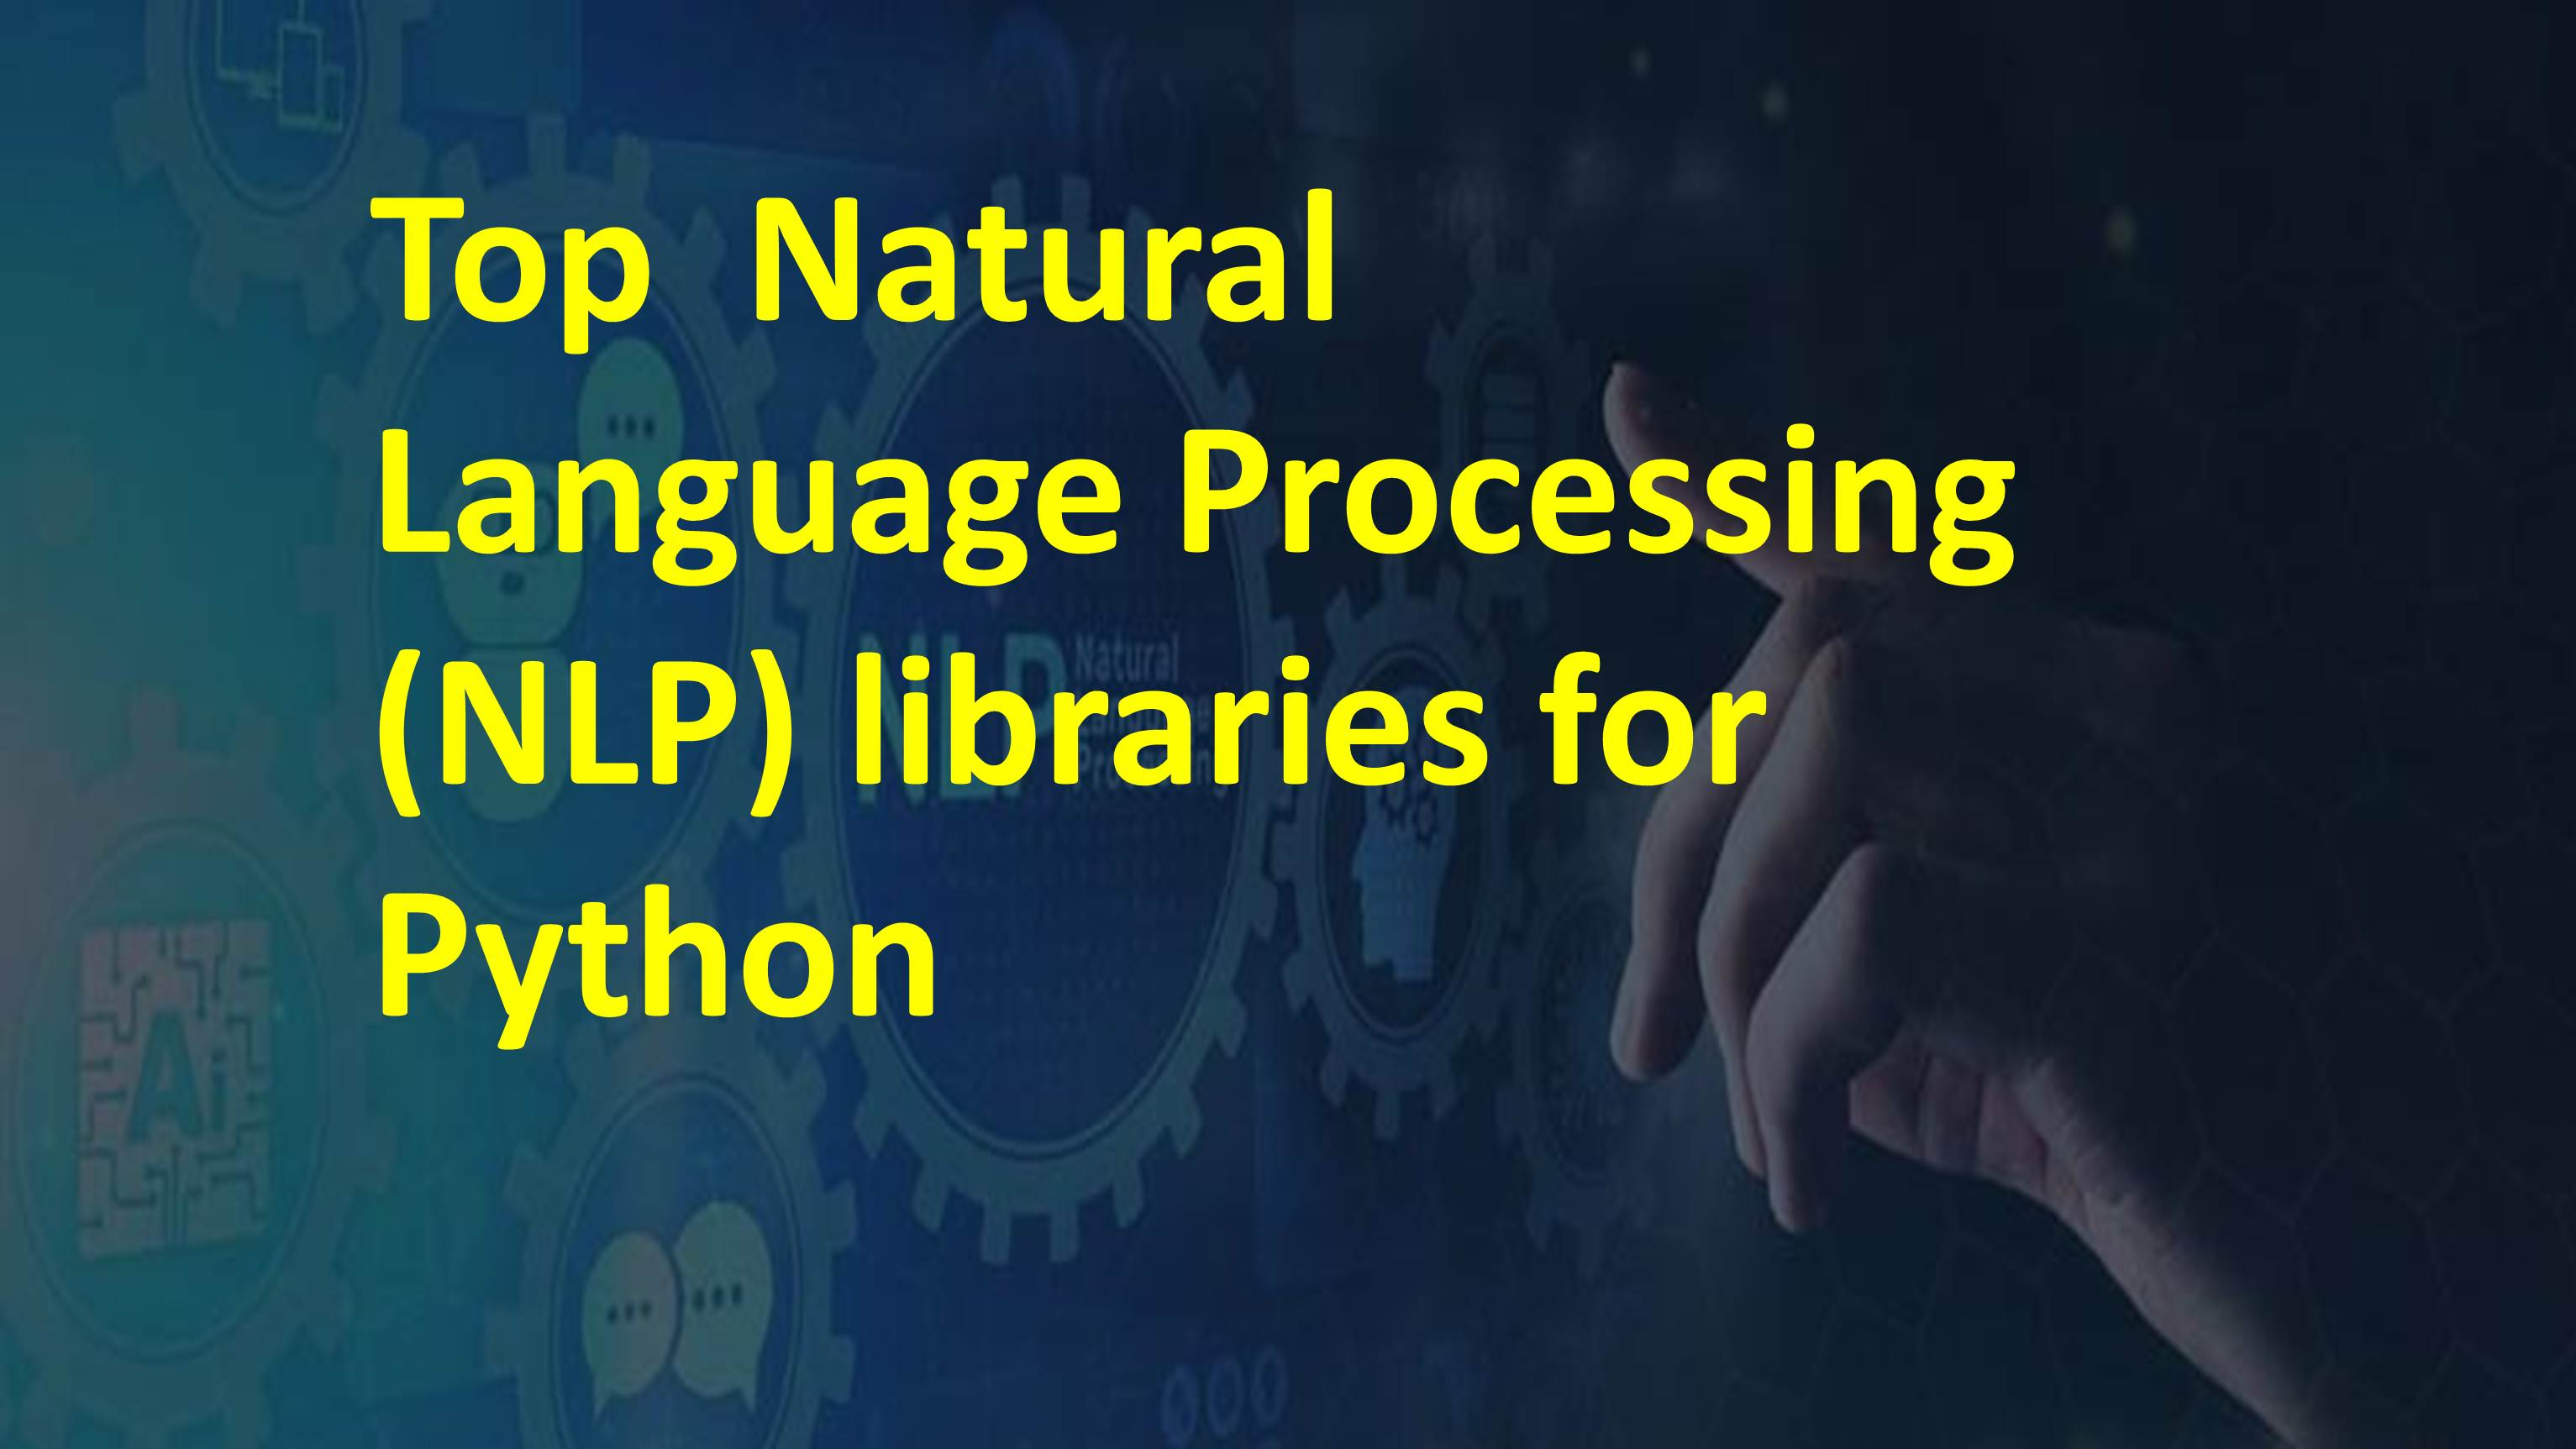 ) Top Natural Language Processing (NLP) libraries for Python